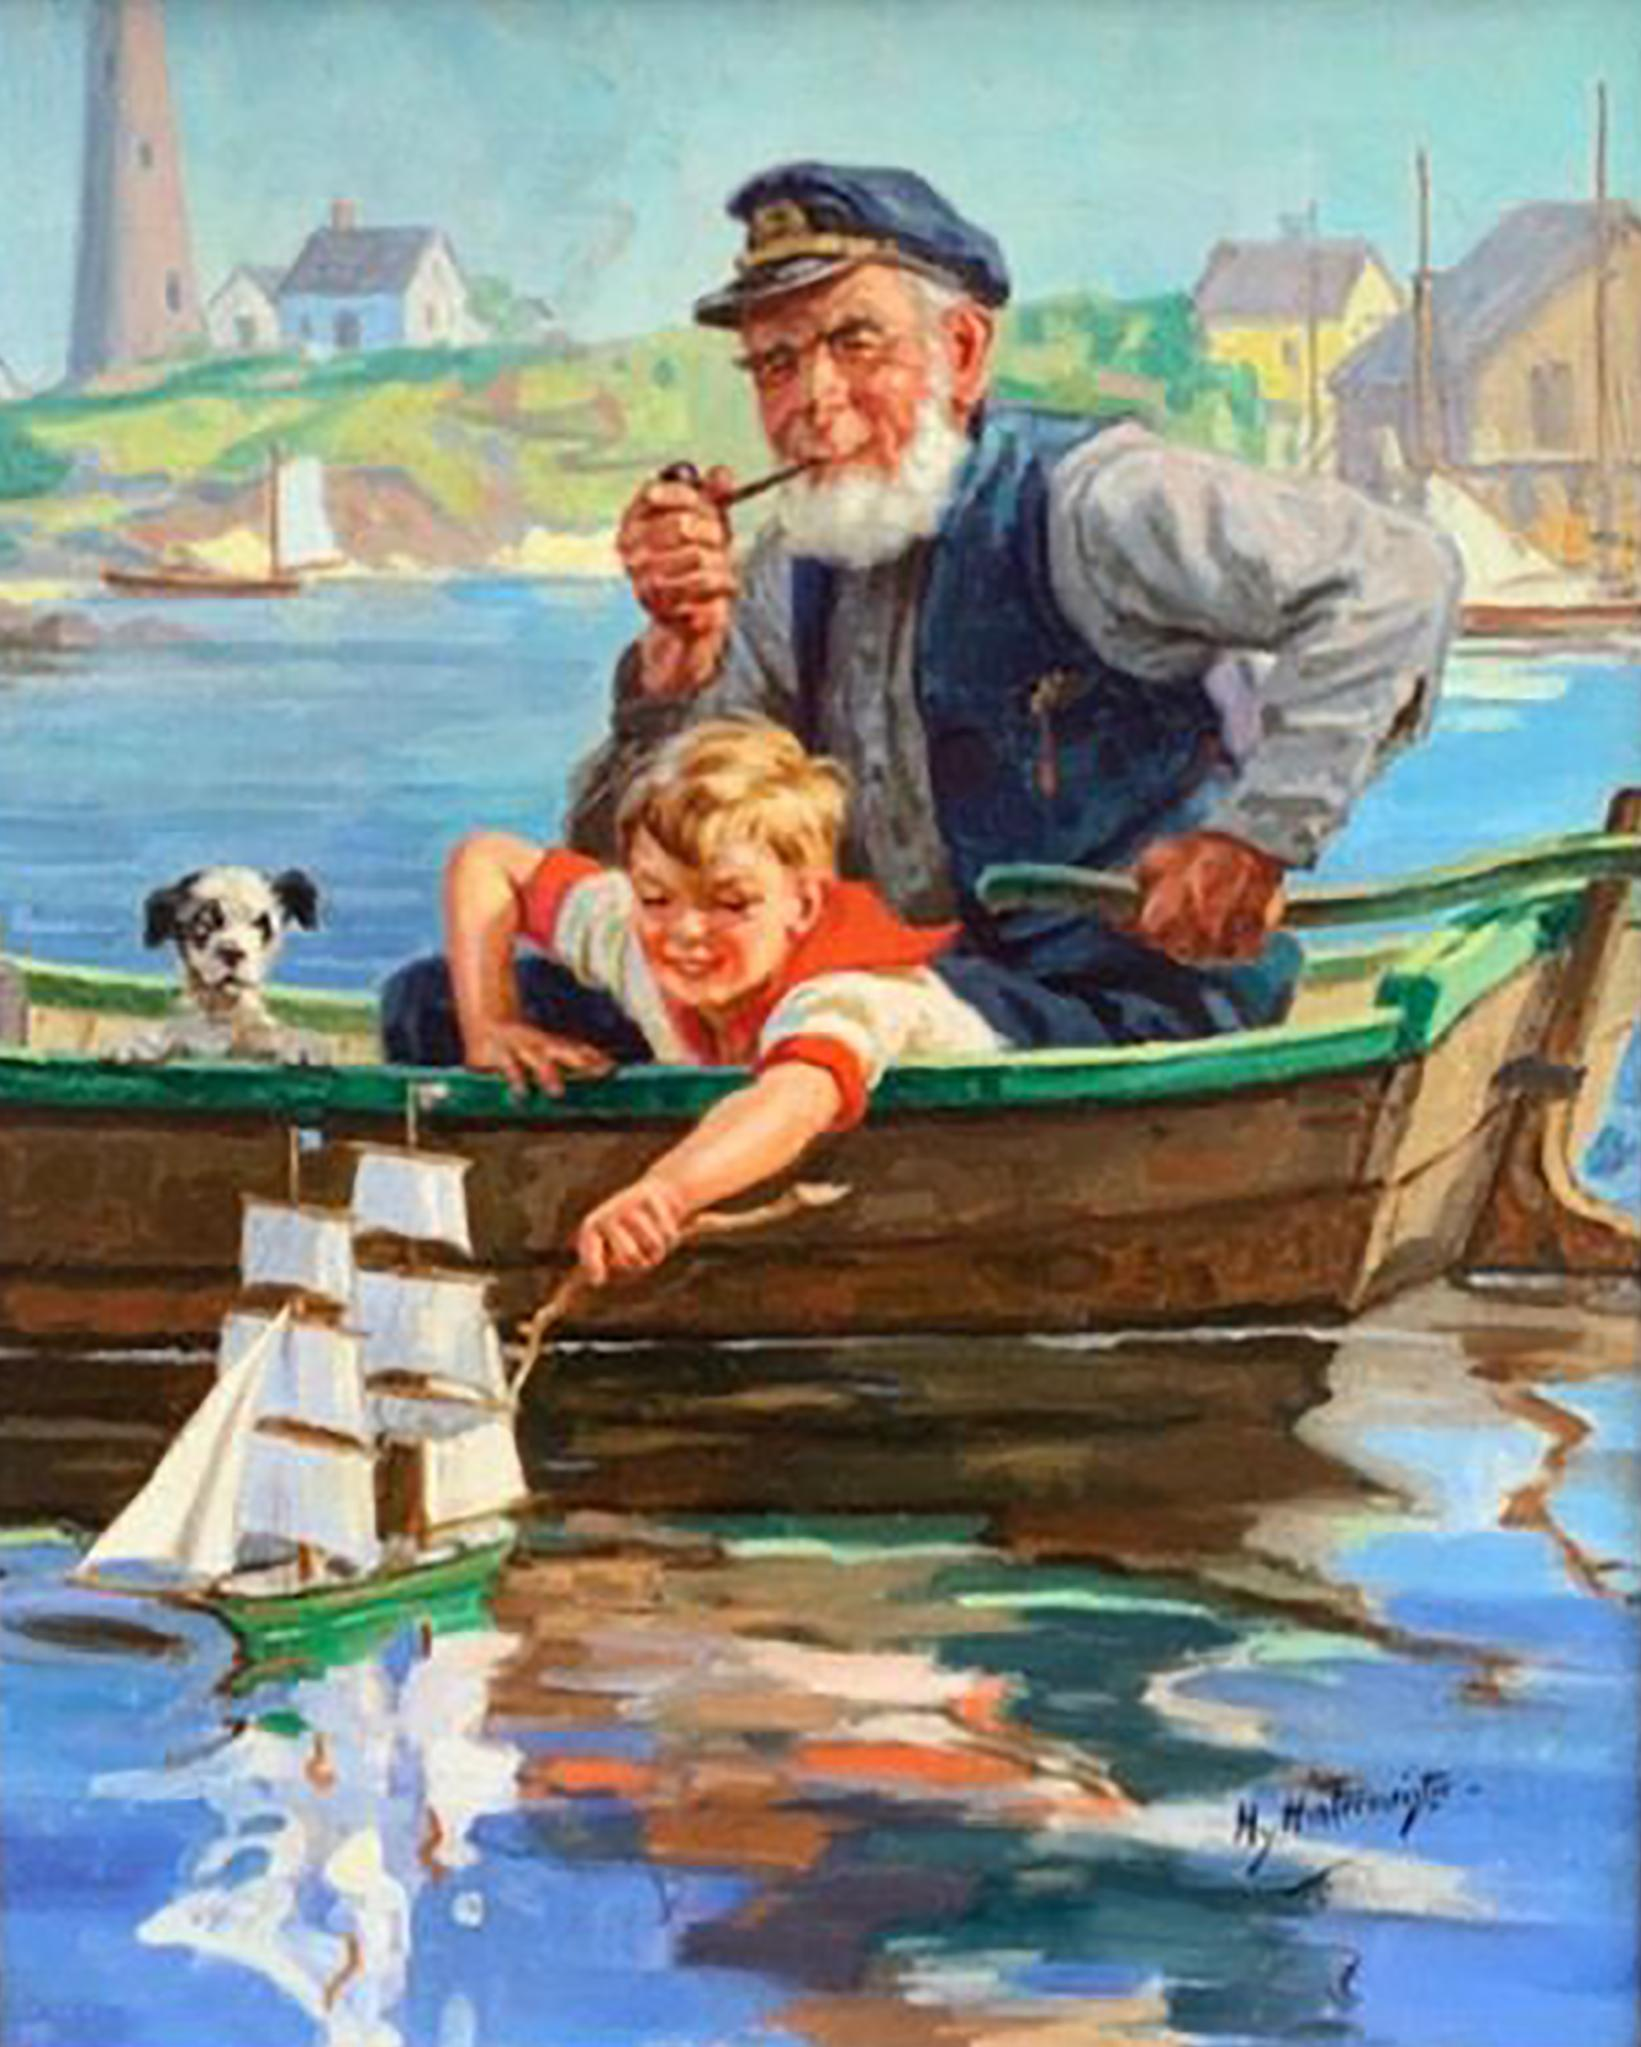 Man and Boy on Boat with Dog